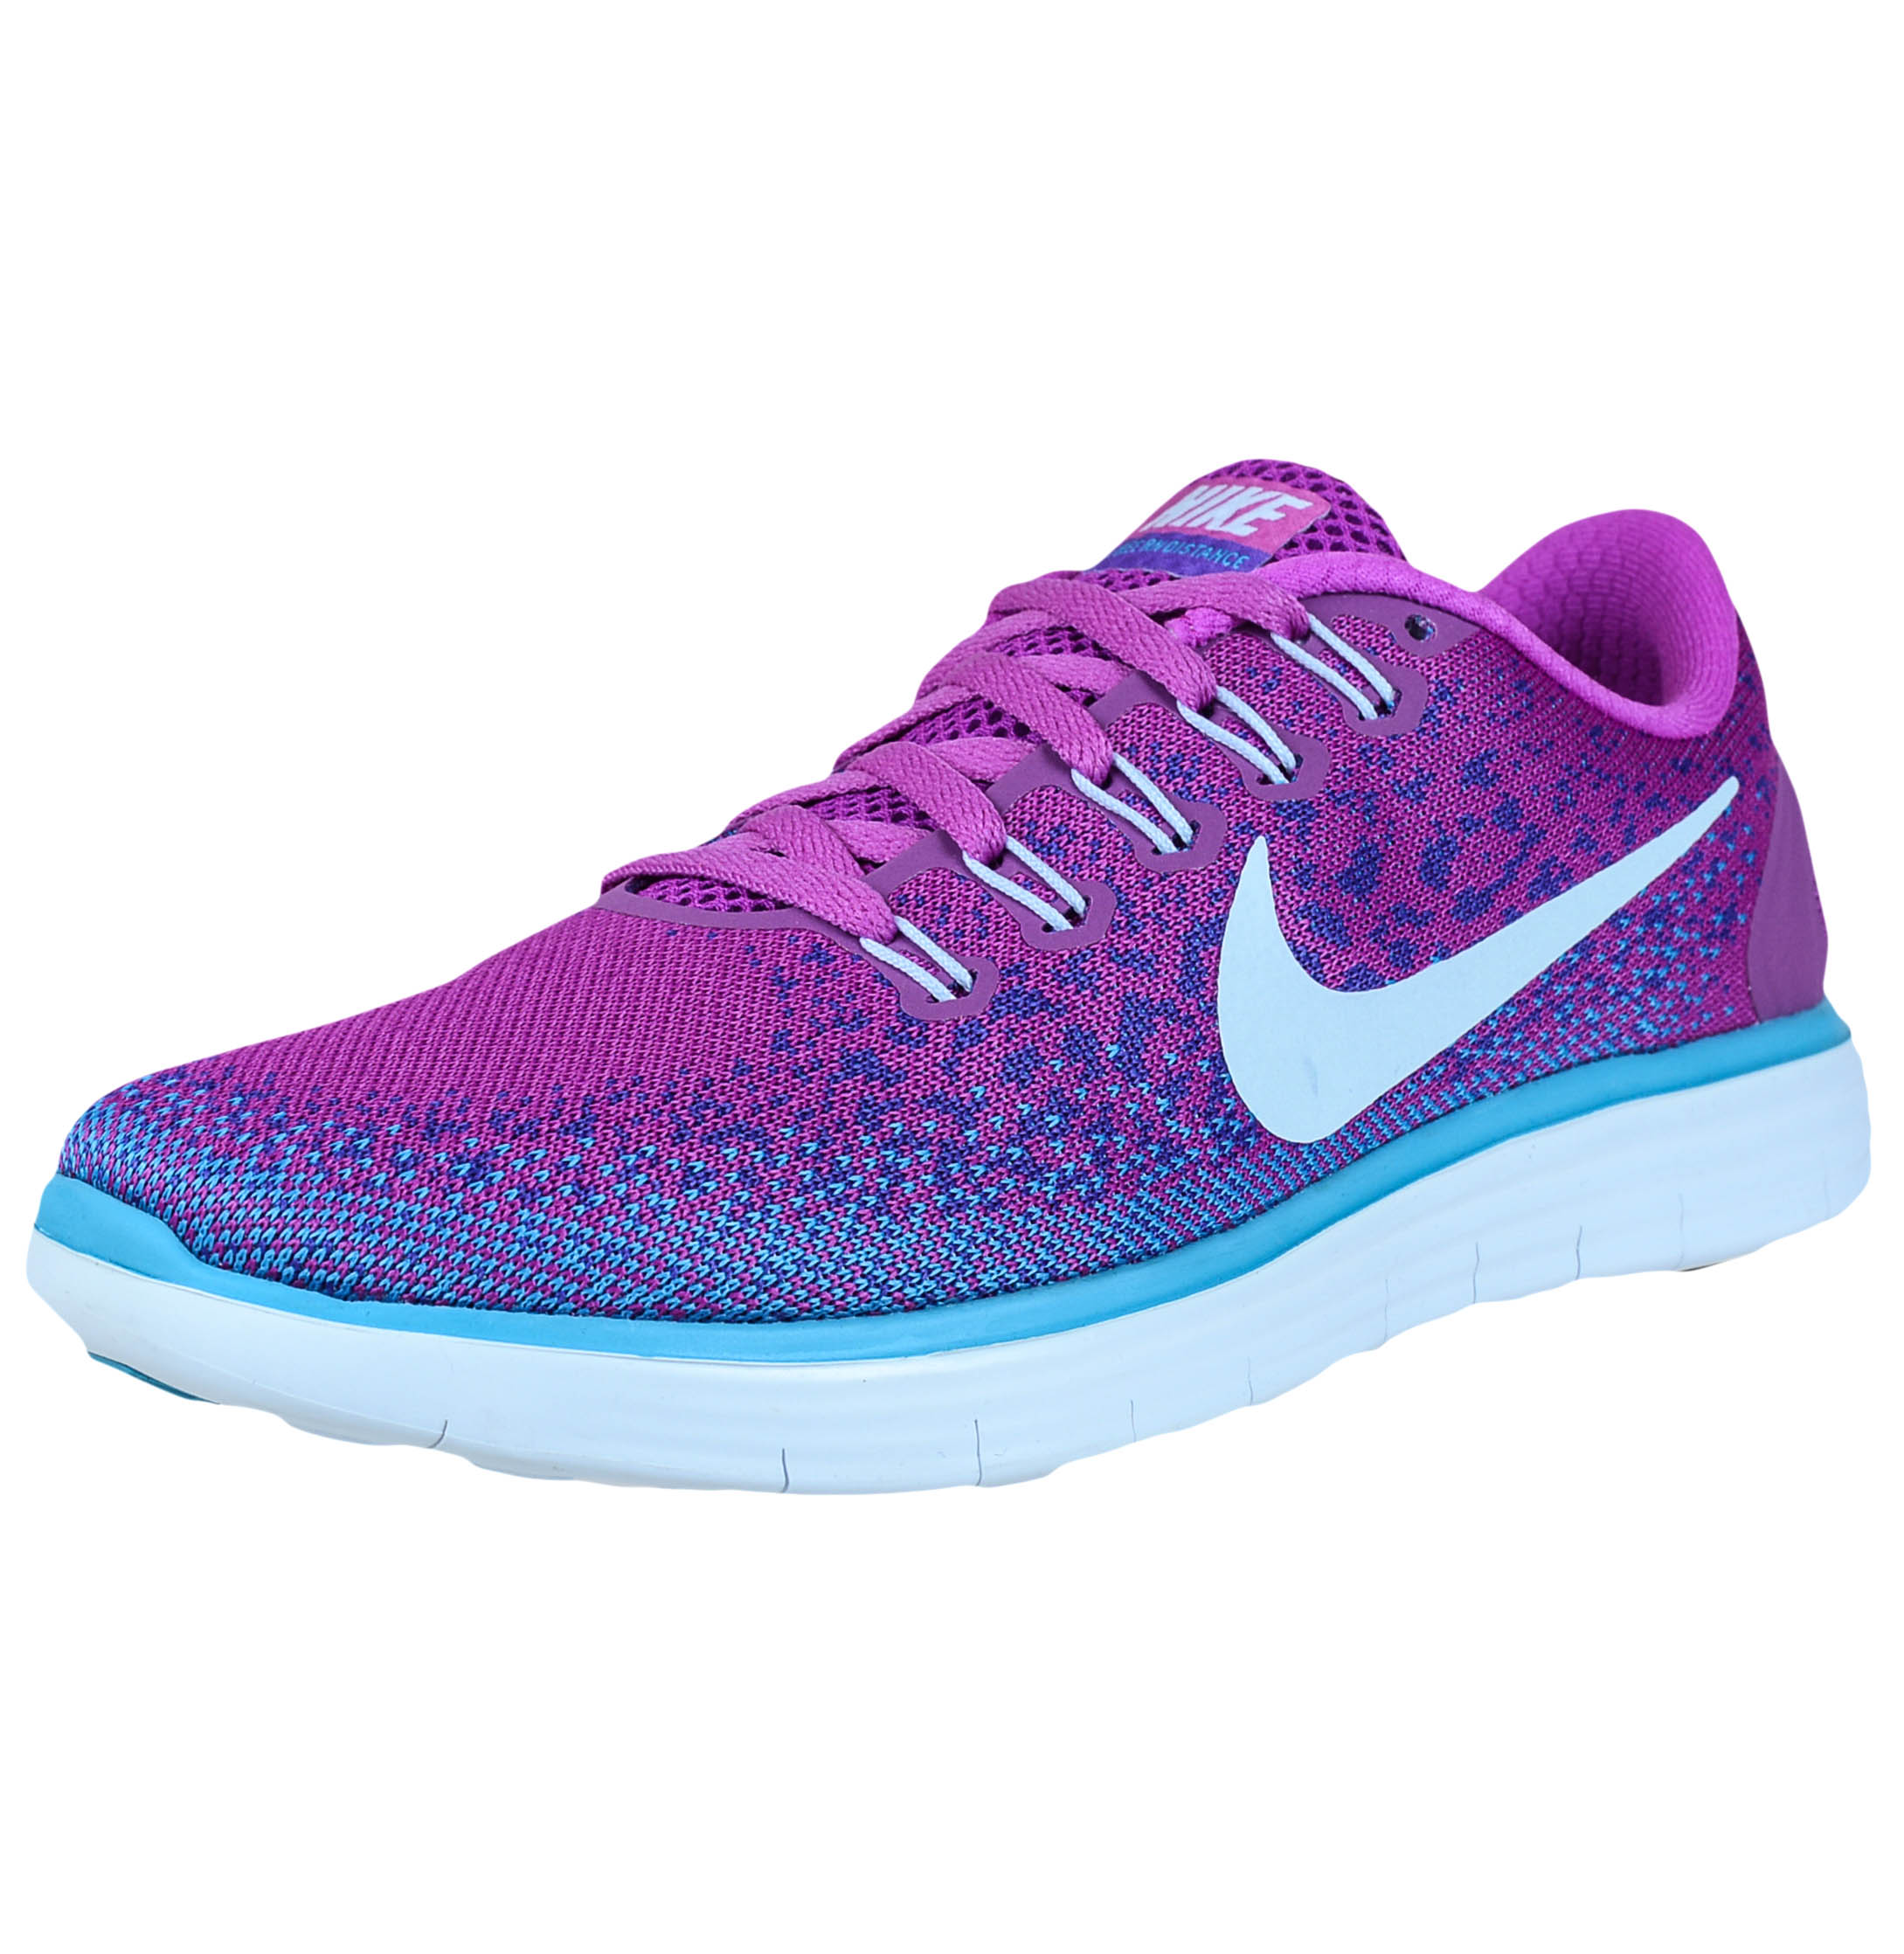 separation shoes 5cb17 fa887 ... free shipping nike nike womens free rn distance running shoes hyper  violet blue tint 827116 501